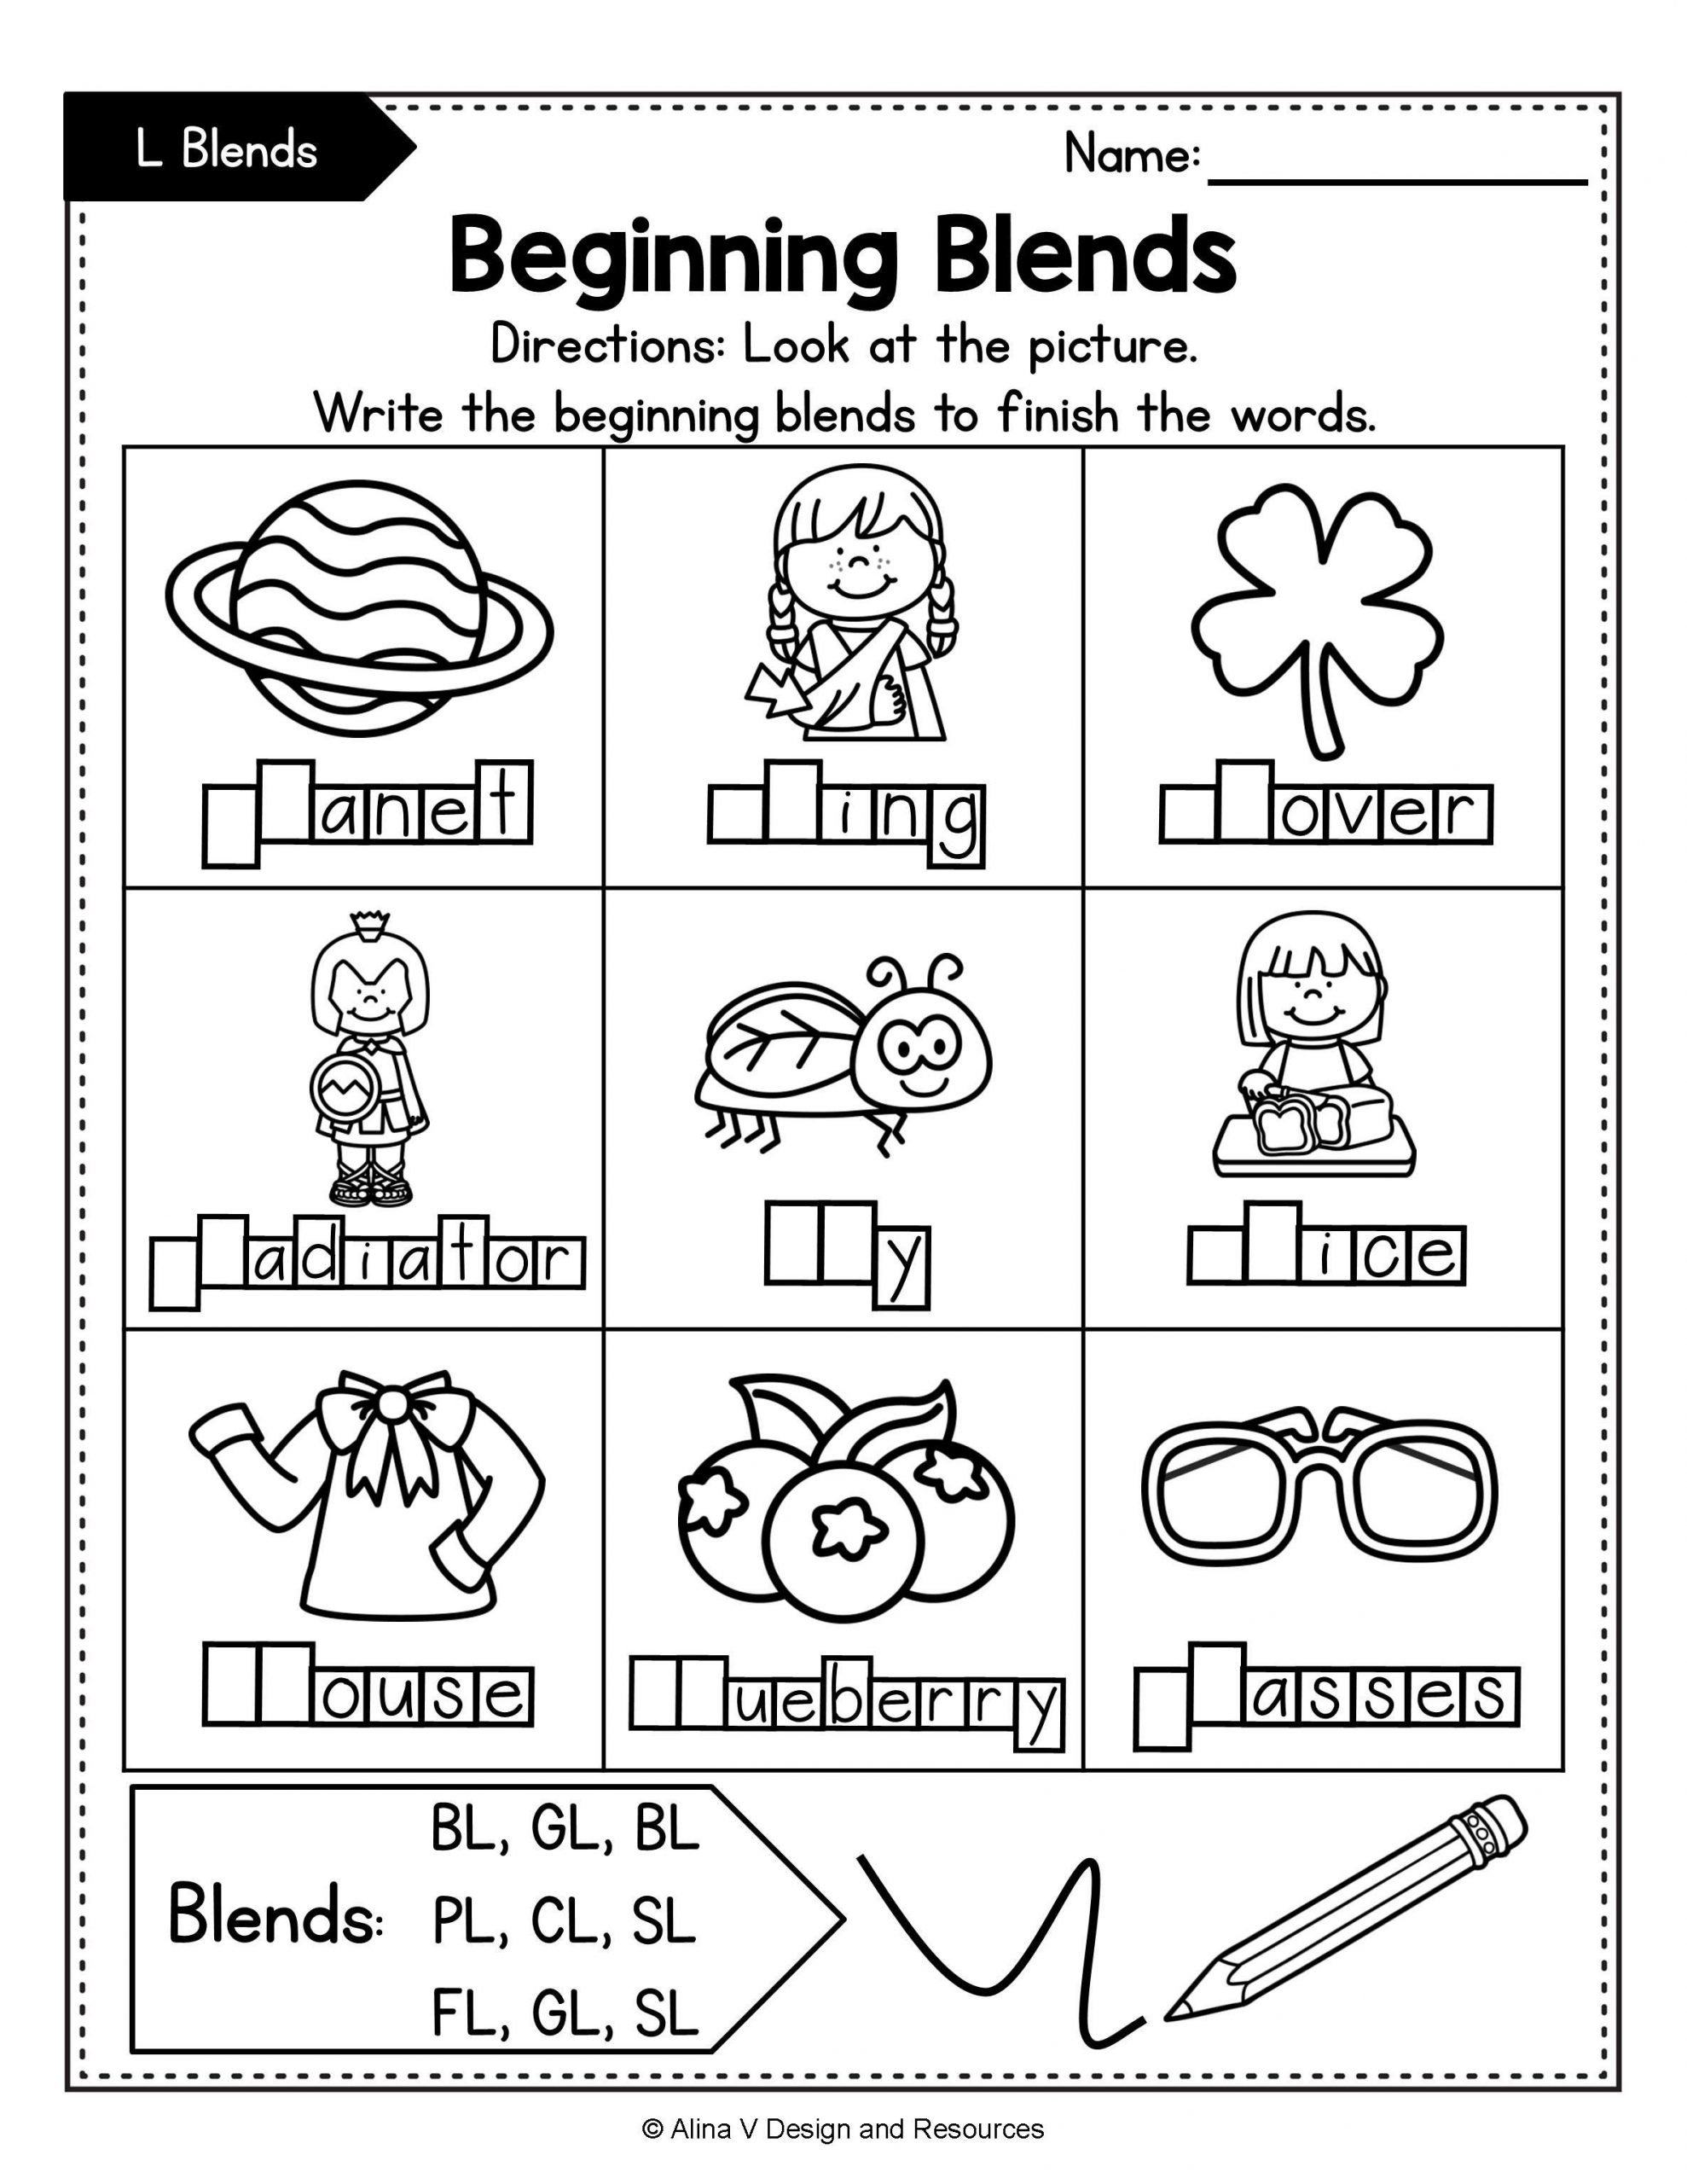 L Blends Worksheets for Kindergarten Beginning Blends Worksheets Bundle Consonant Blends In